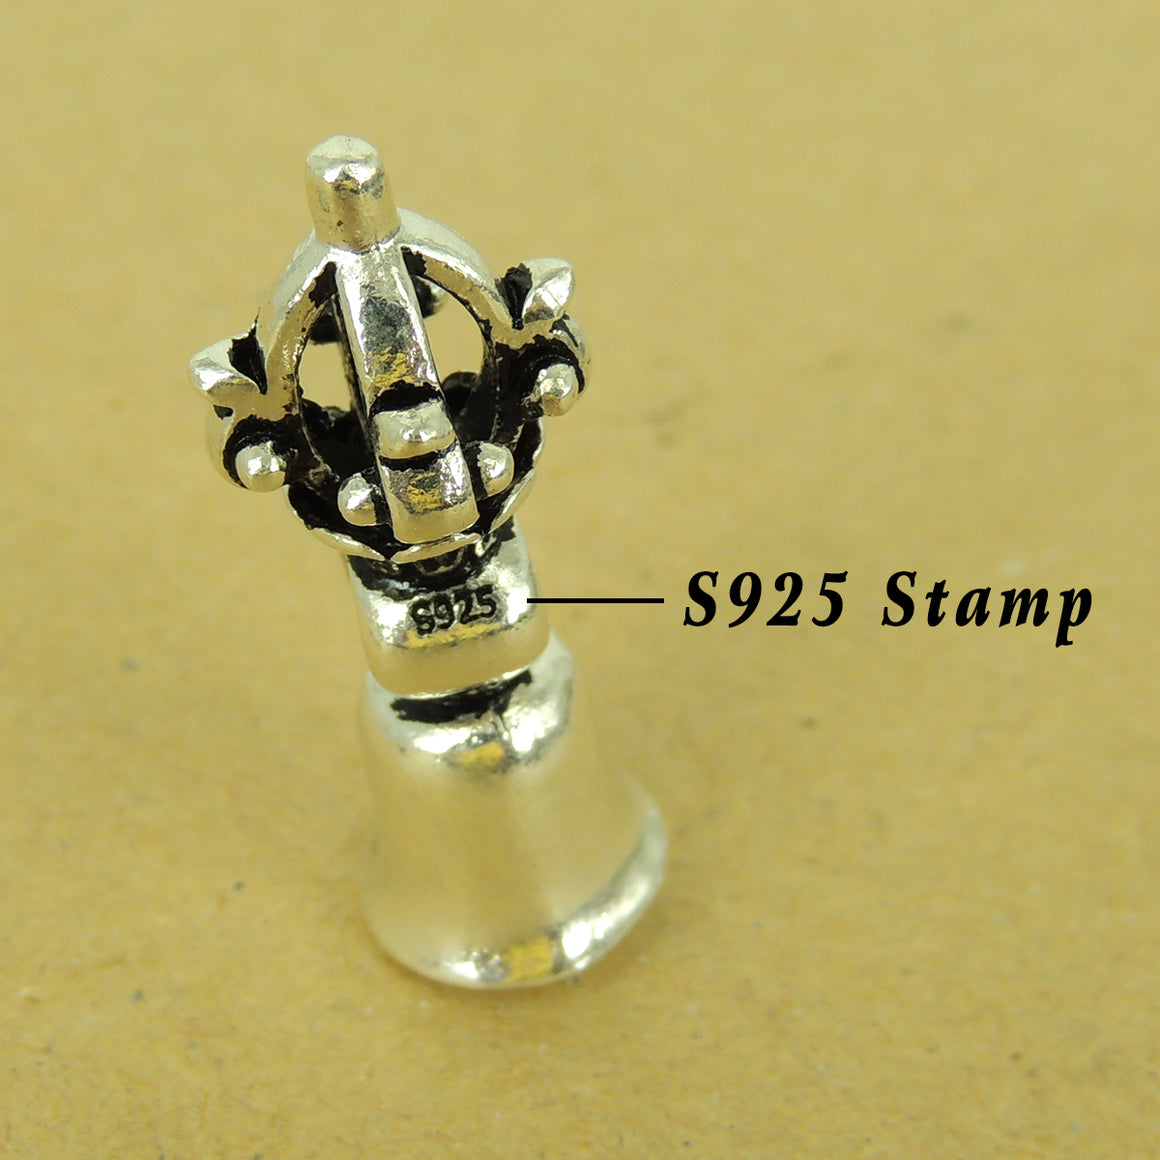 1 PC Buddhism Prayer Bell Pendant Charm - Genuine S925 Sterling Silver